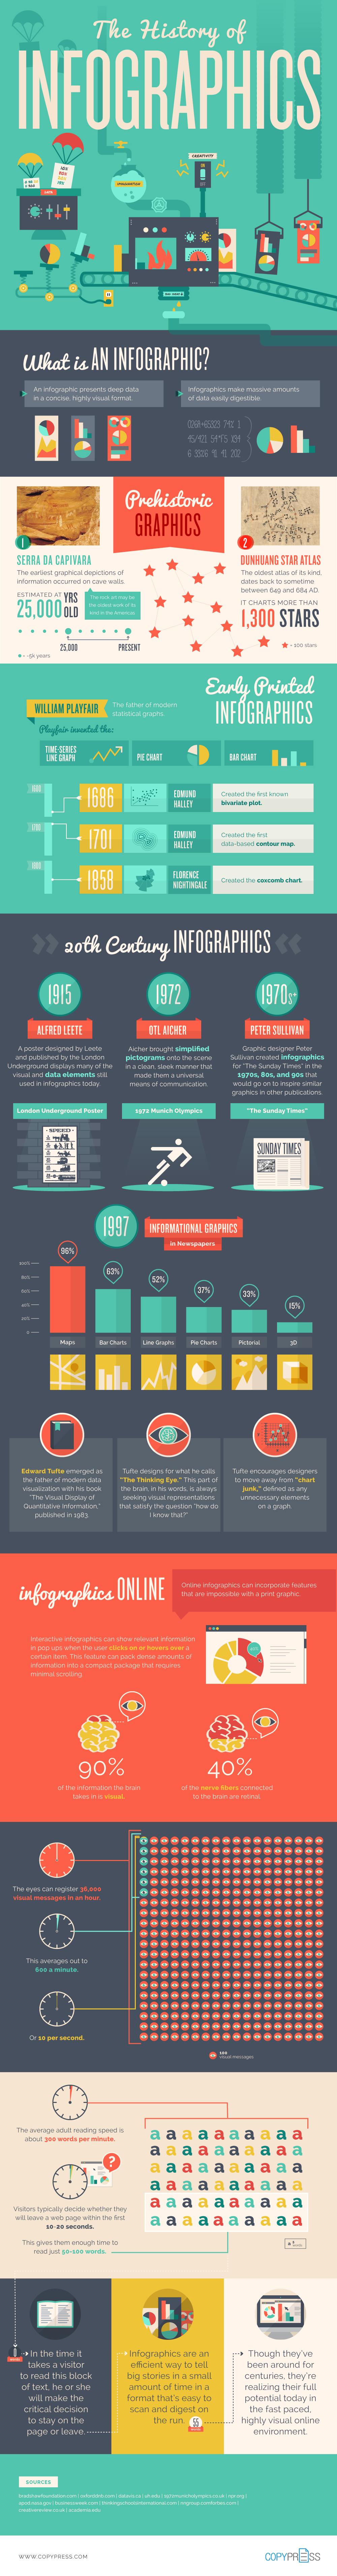 An infographic of the History of Infographics